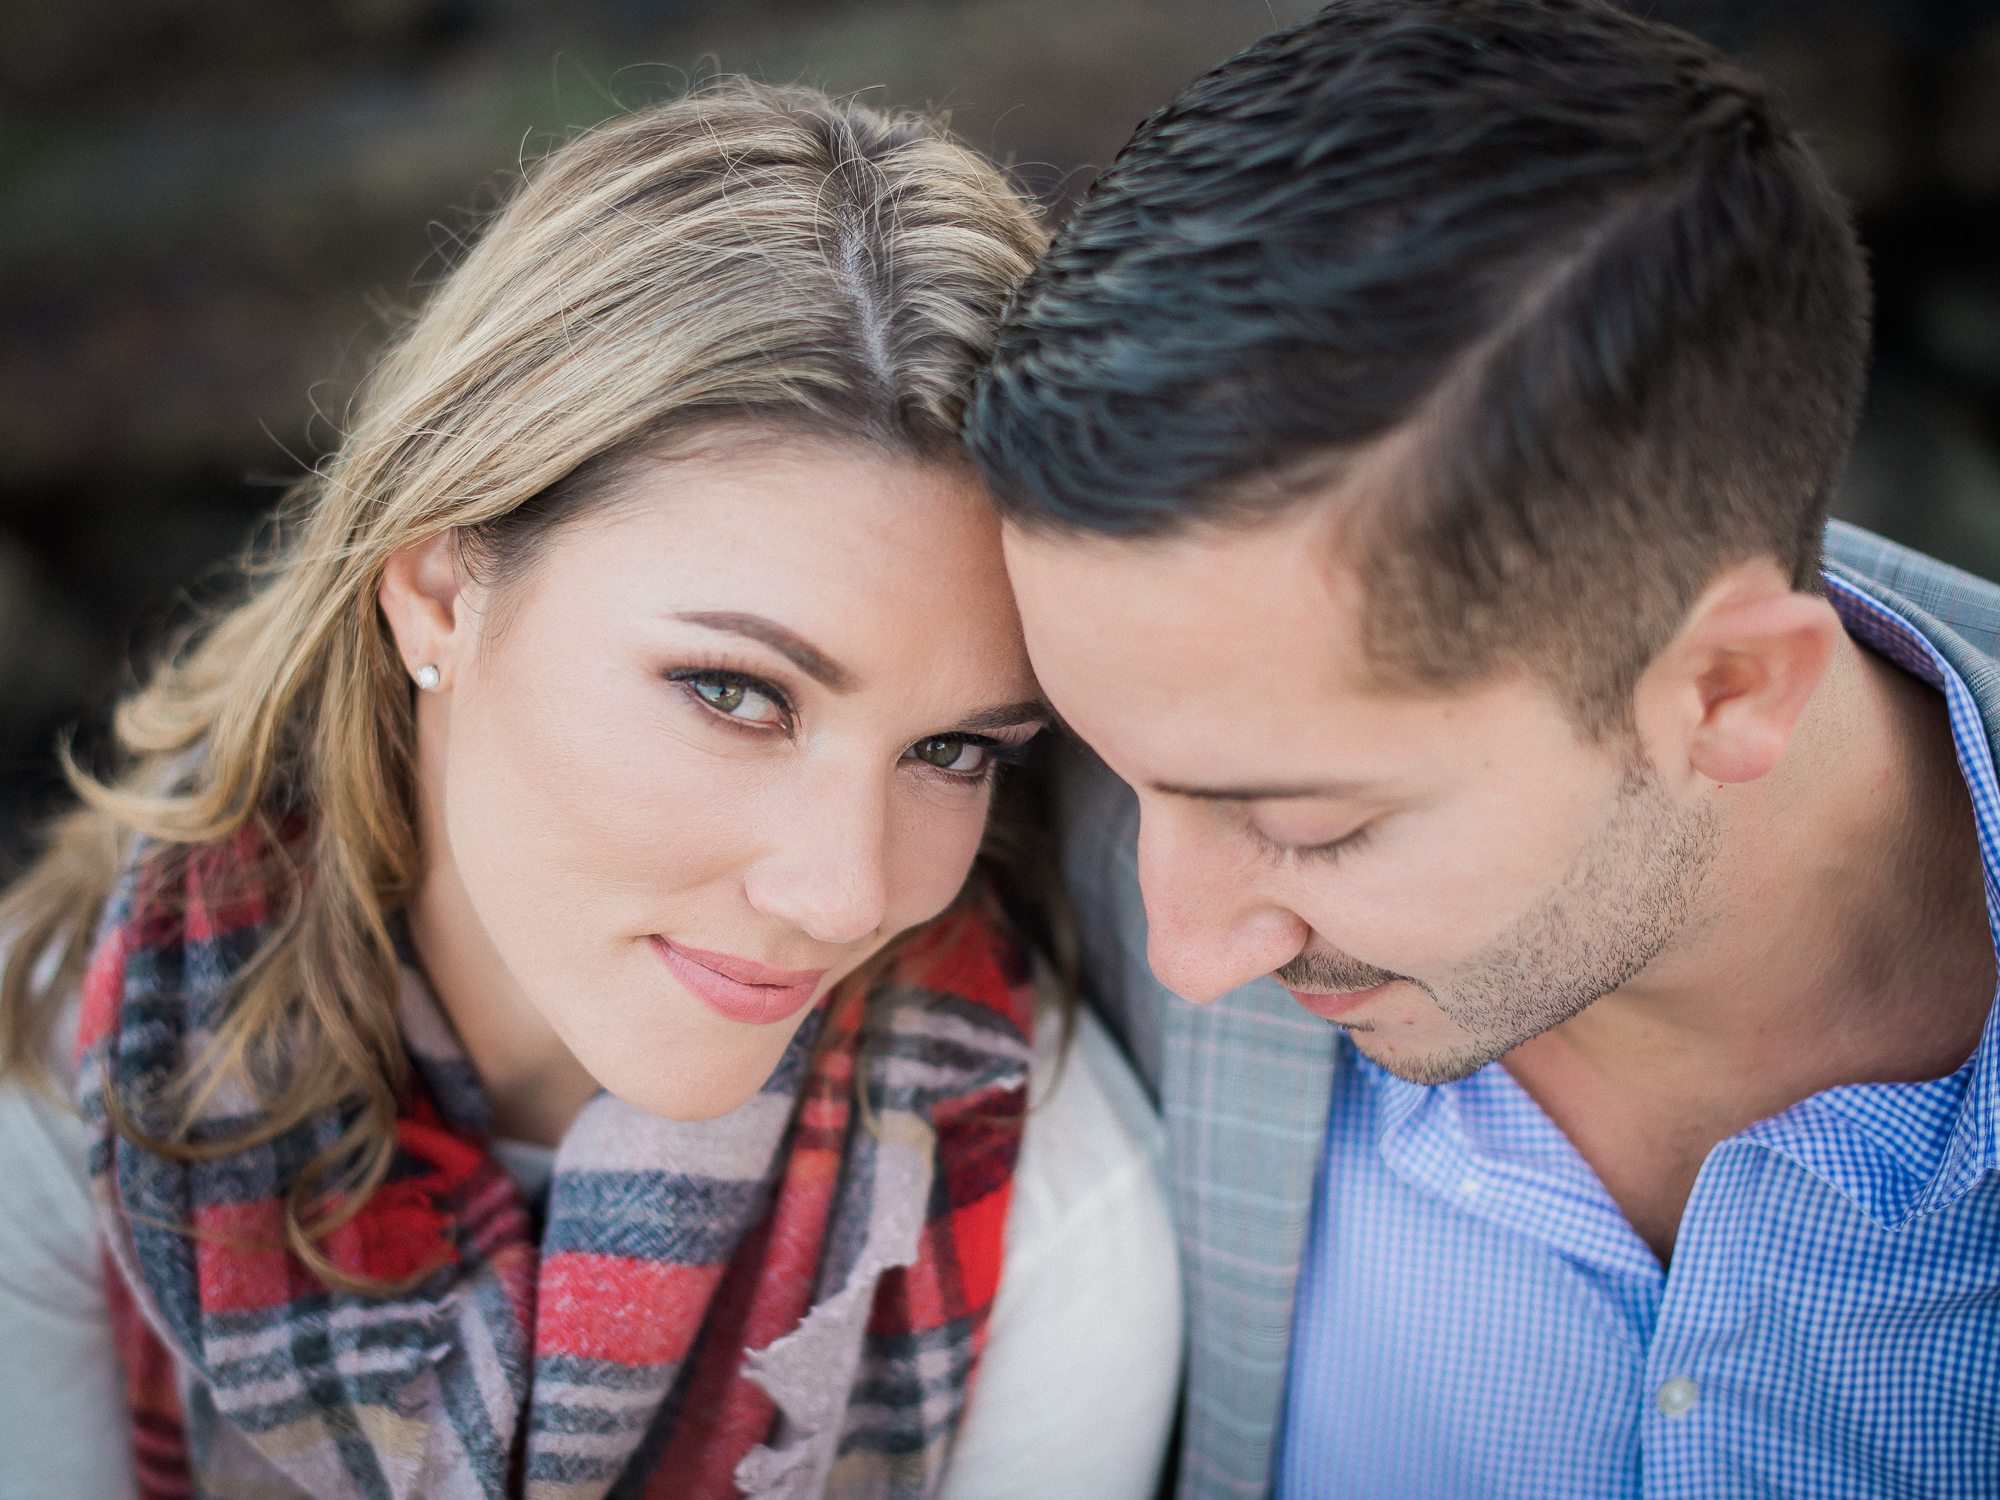 Katie+Nick_engagament_spp-10.jpg